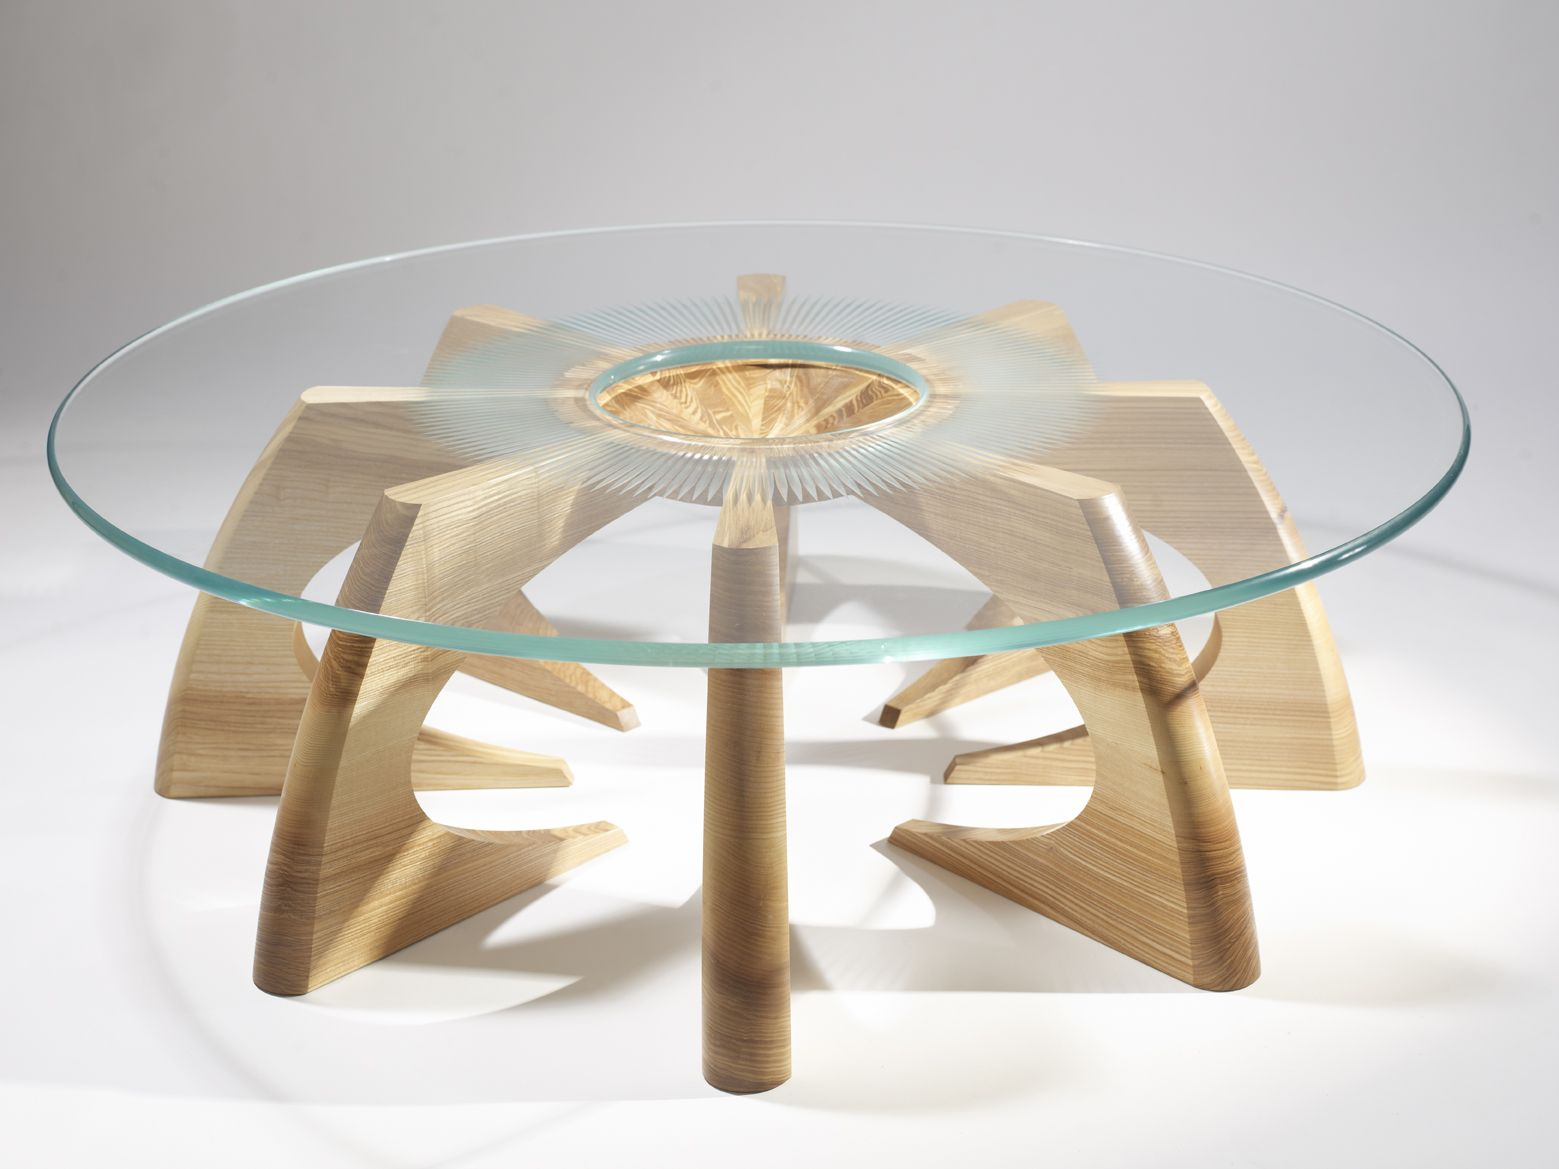 Wood Table Designs Free Wood Furniture Plans Table